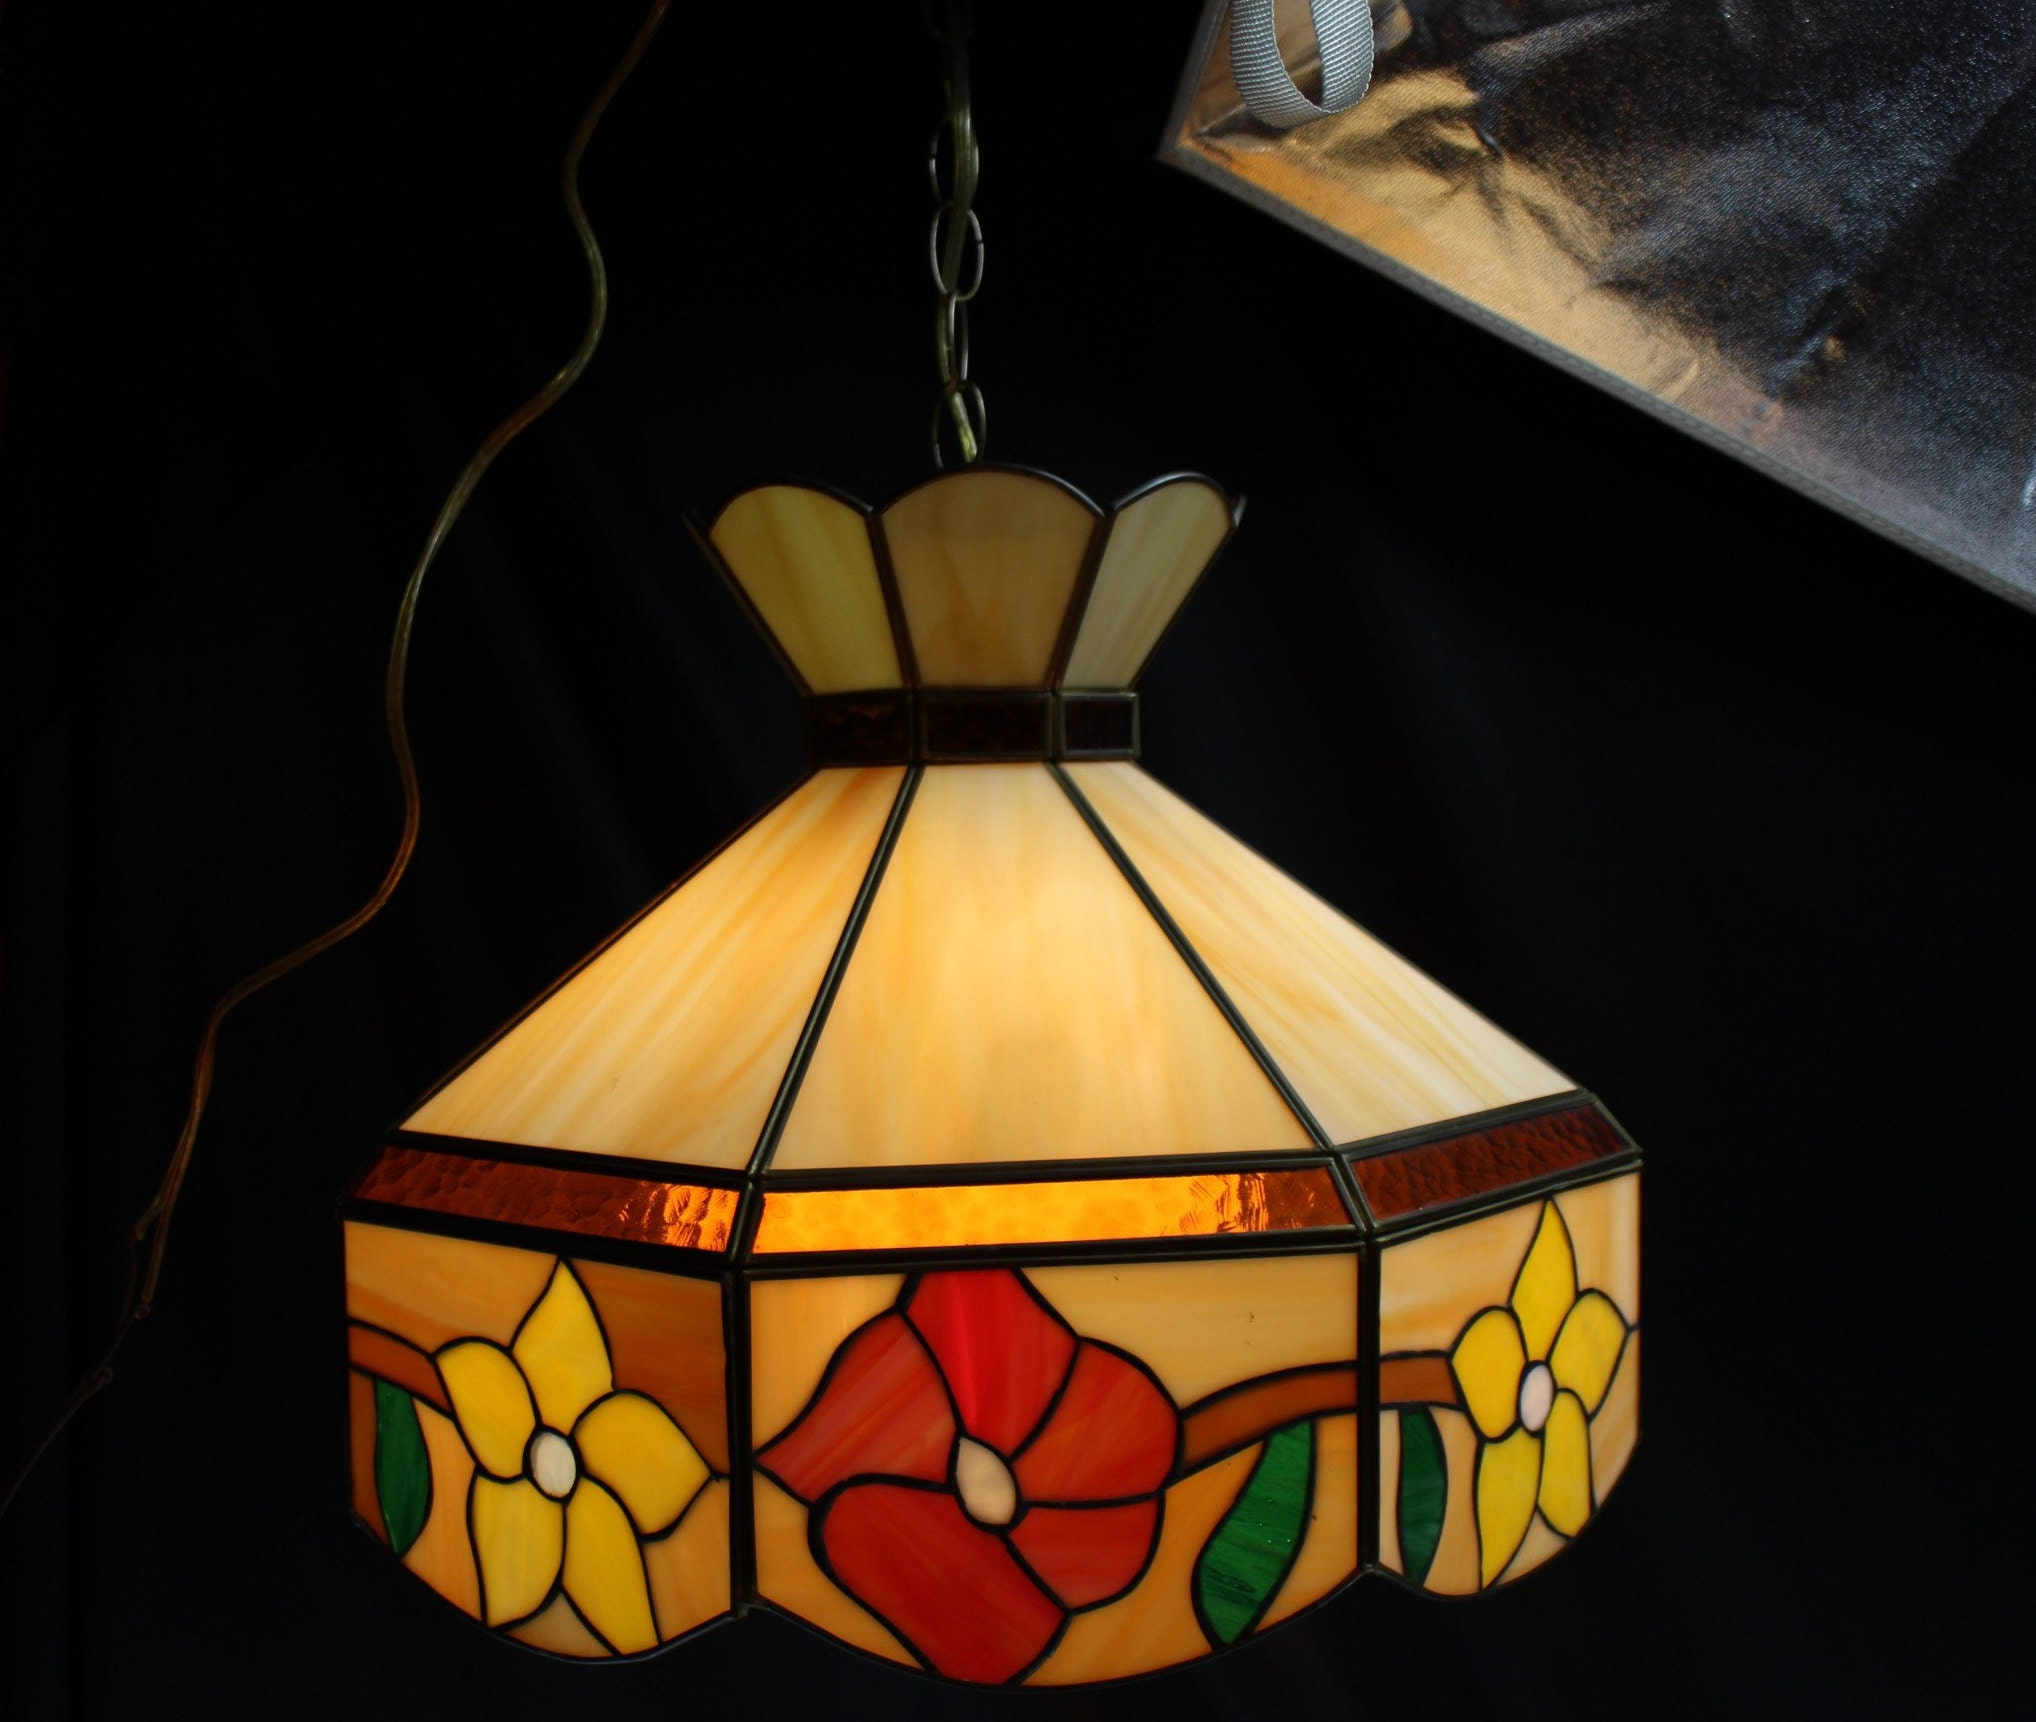 Attirant Vintage Tiffany Style Leaded Stained Glass Hanging Light Lamp Shade Fixture  Pendant Lighting Home Decor